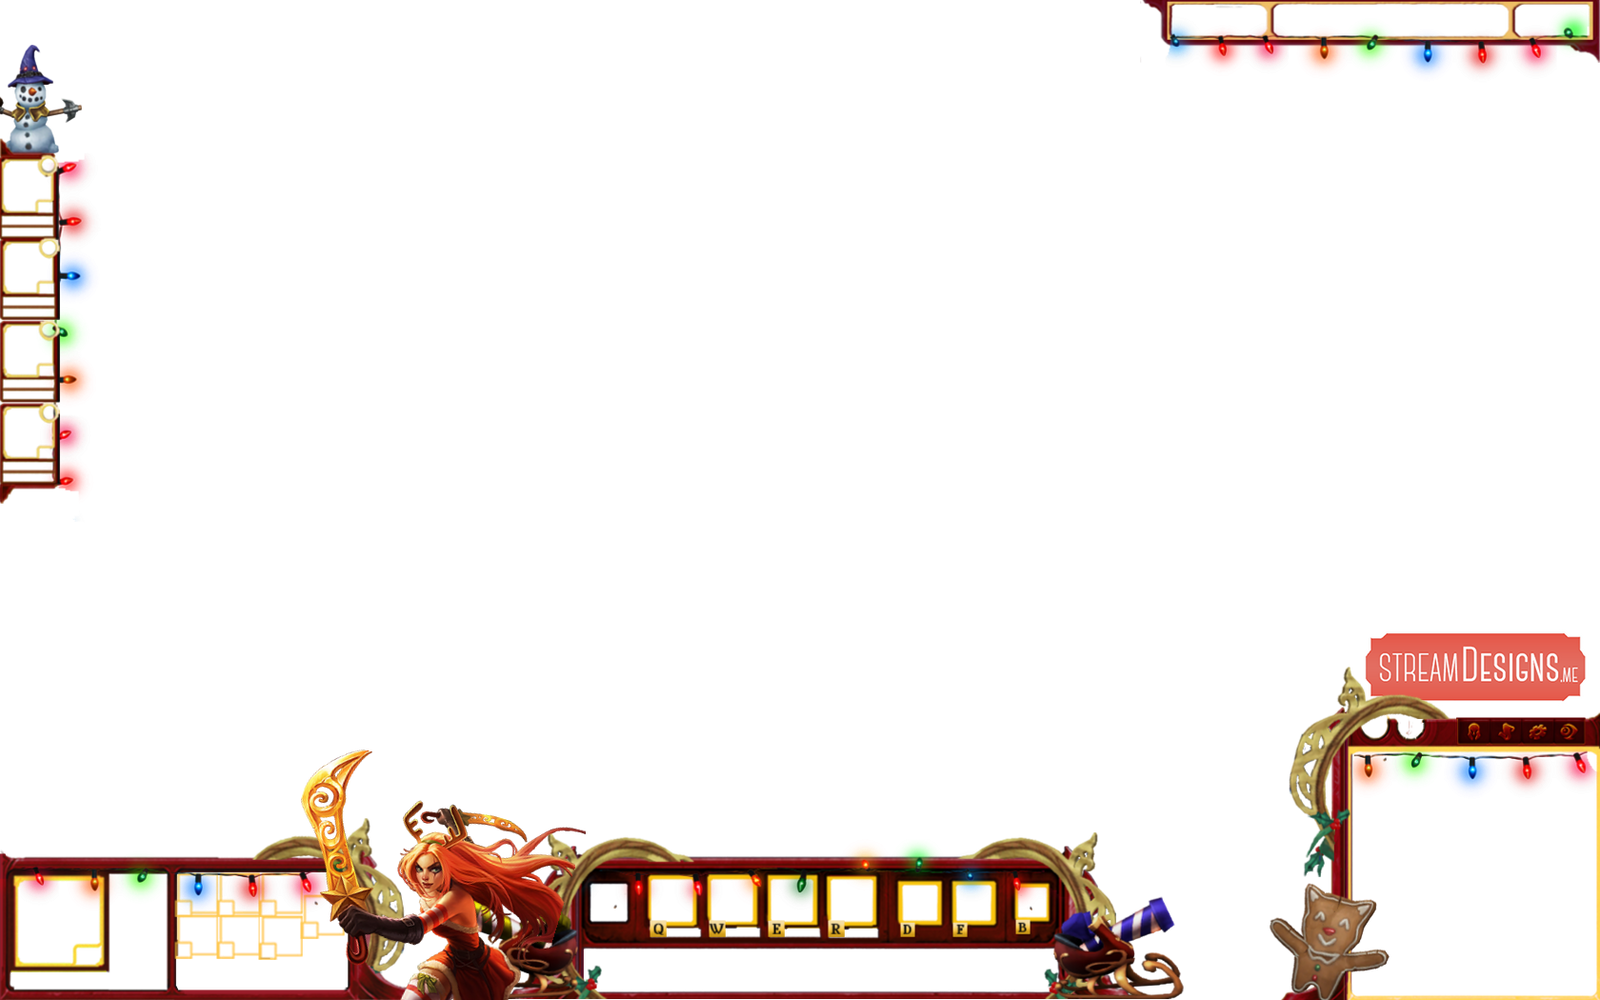 Christmas League of Legends Overlay by m3ndi3 on DeviantArt